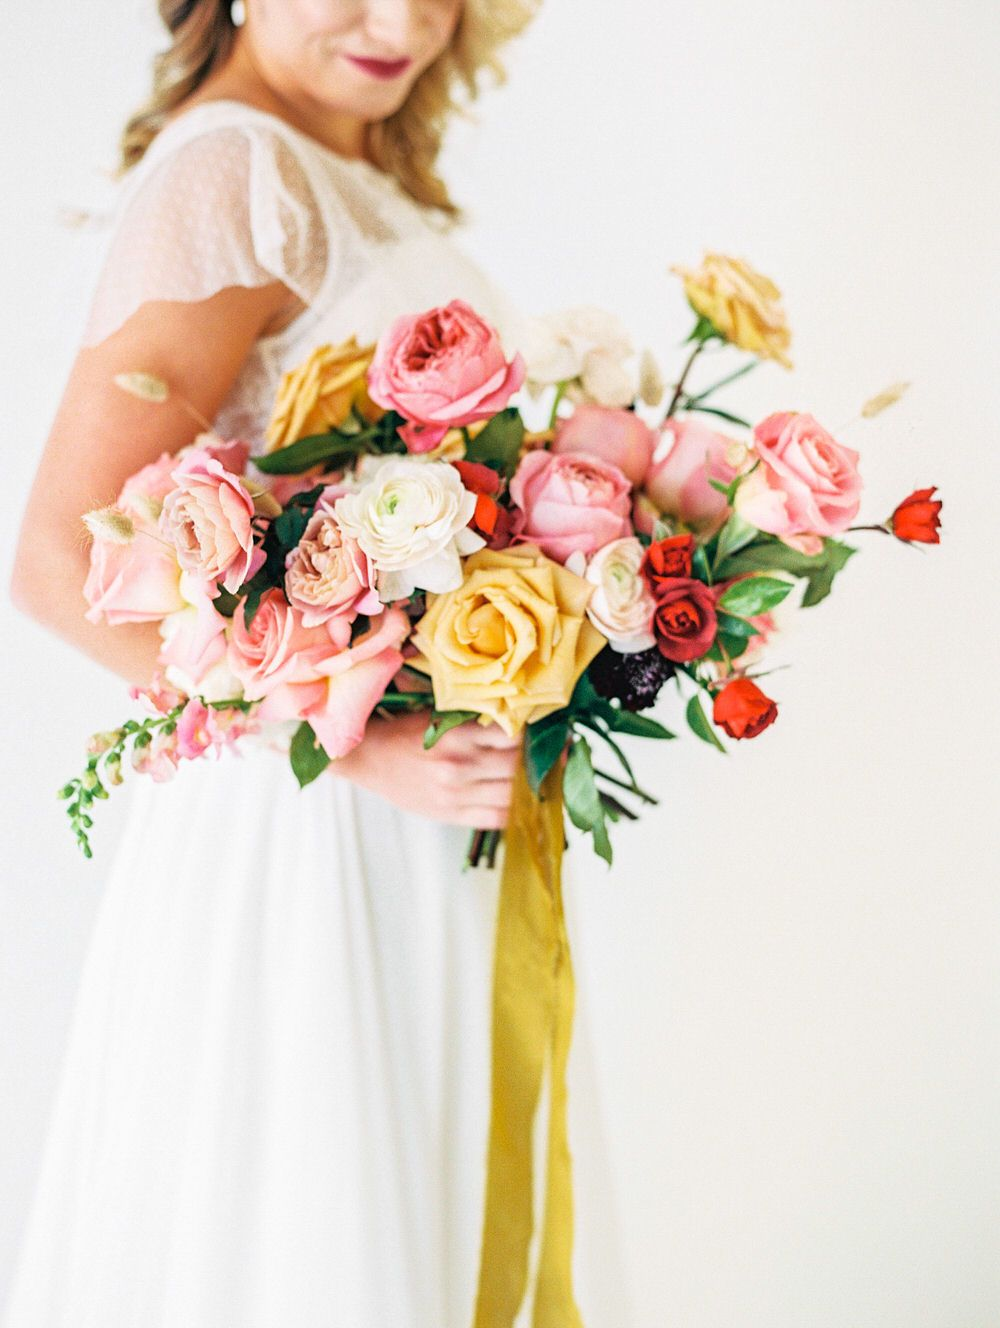 Juicy Floral Inspiration with Roses and Pops of Mustard and Red